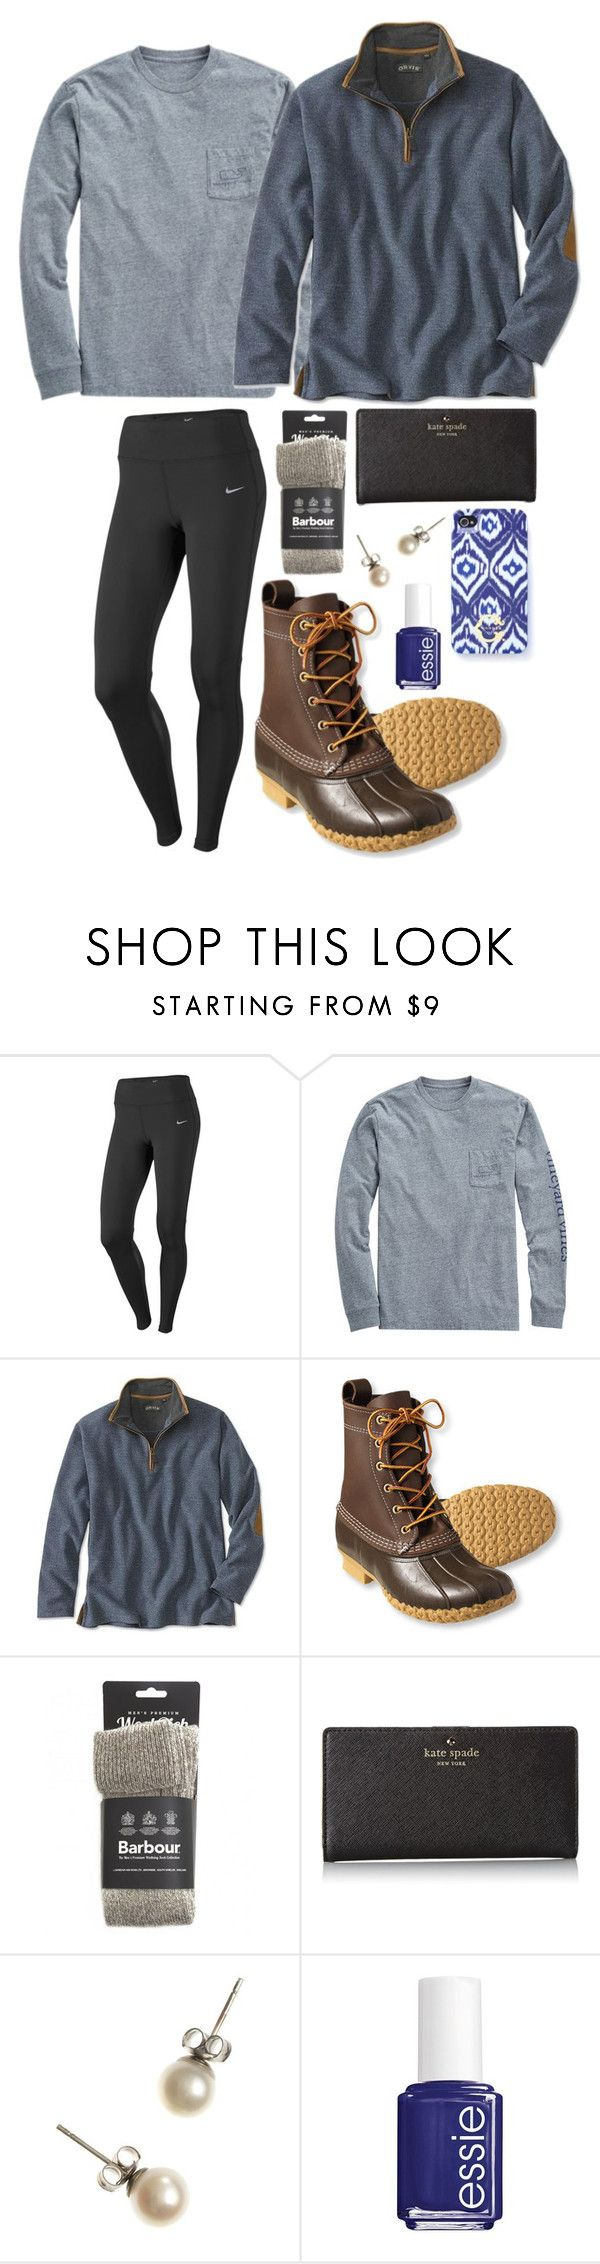 """Sunday errands"" by hbcernuto ❤ liked on Polyvore featuring NIKE, Vineyard Vines, L.L.Bean, Barbour, Kate Spade, J.Crew, C. Wonder and Essie"